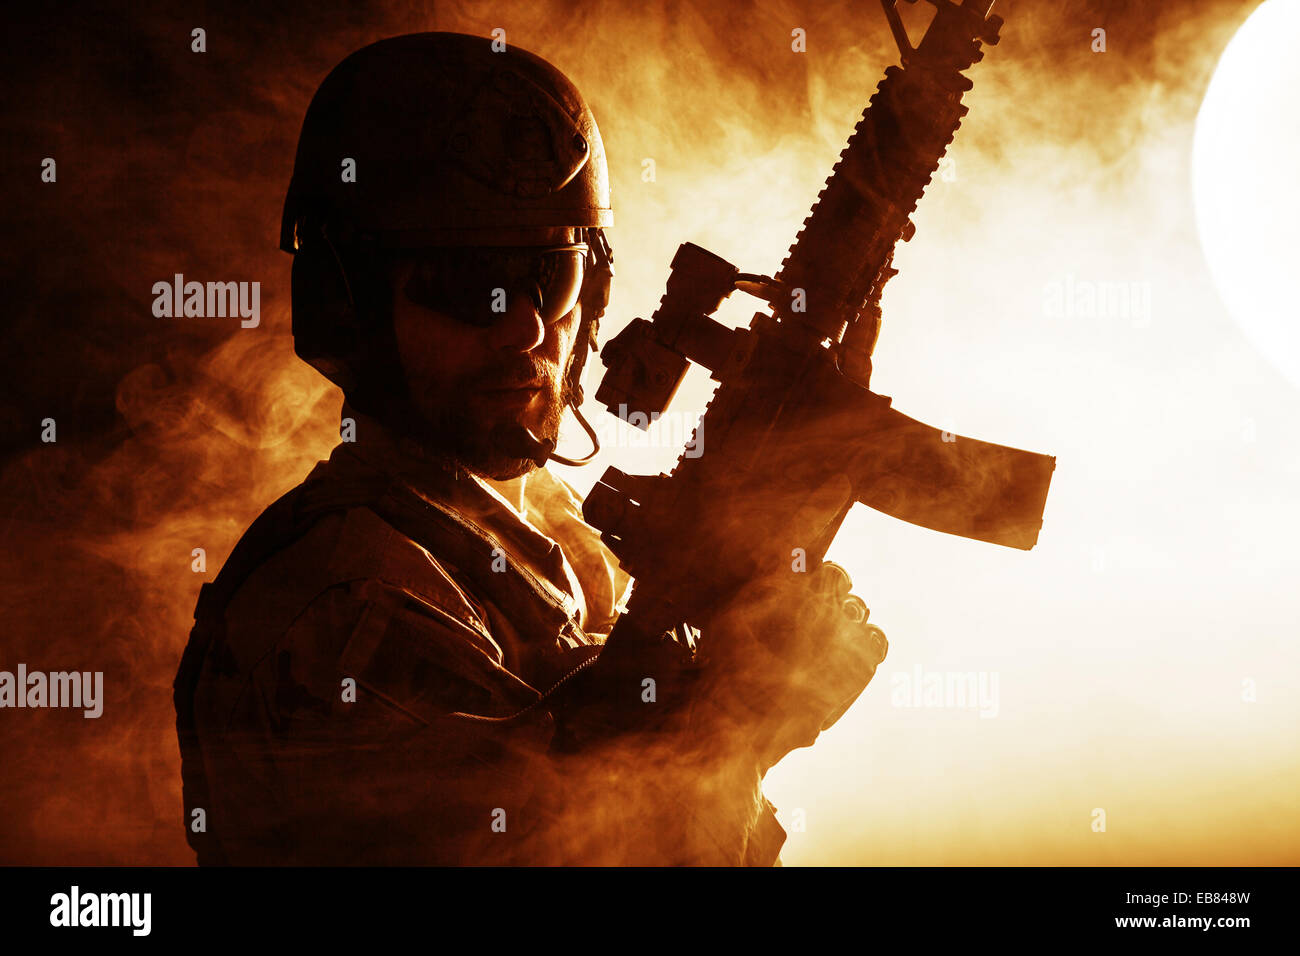 Bearded special forces soldier - Stock Image